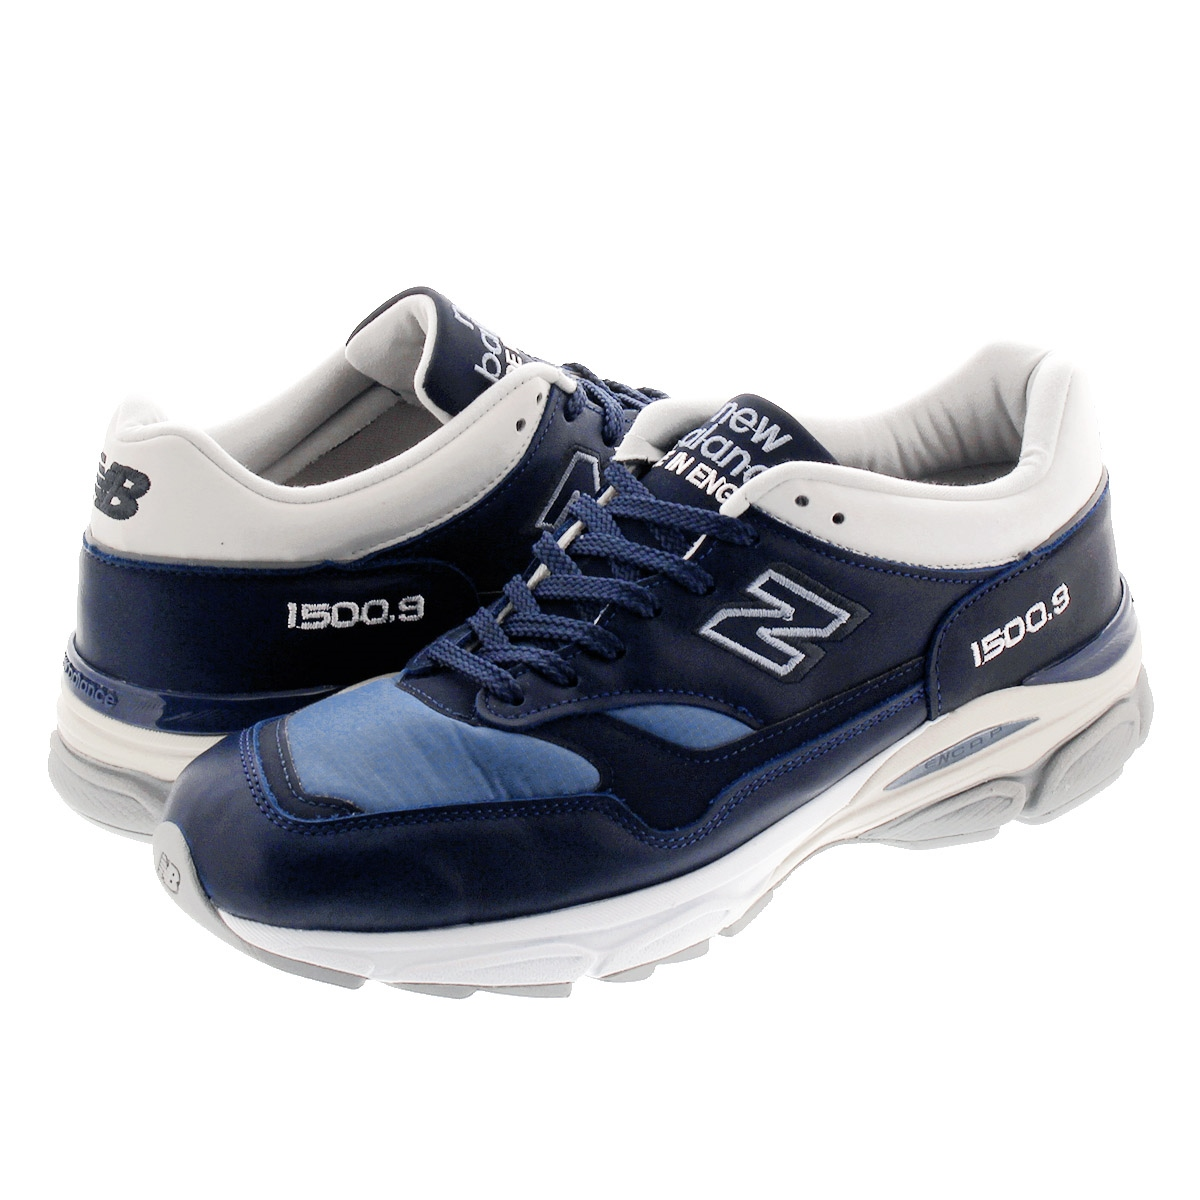 NEW BALANCE M15009LP 【Made in England】 ニューバランス M 15009 LP NAVY/GREY